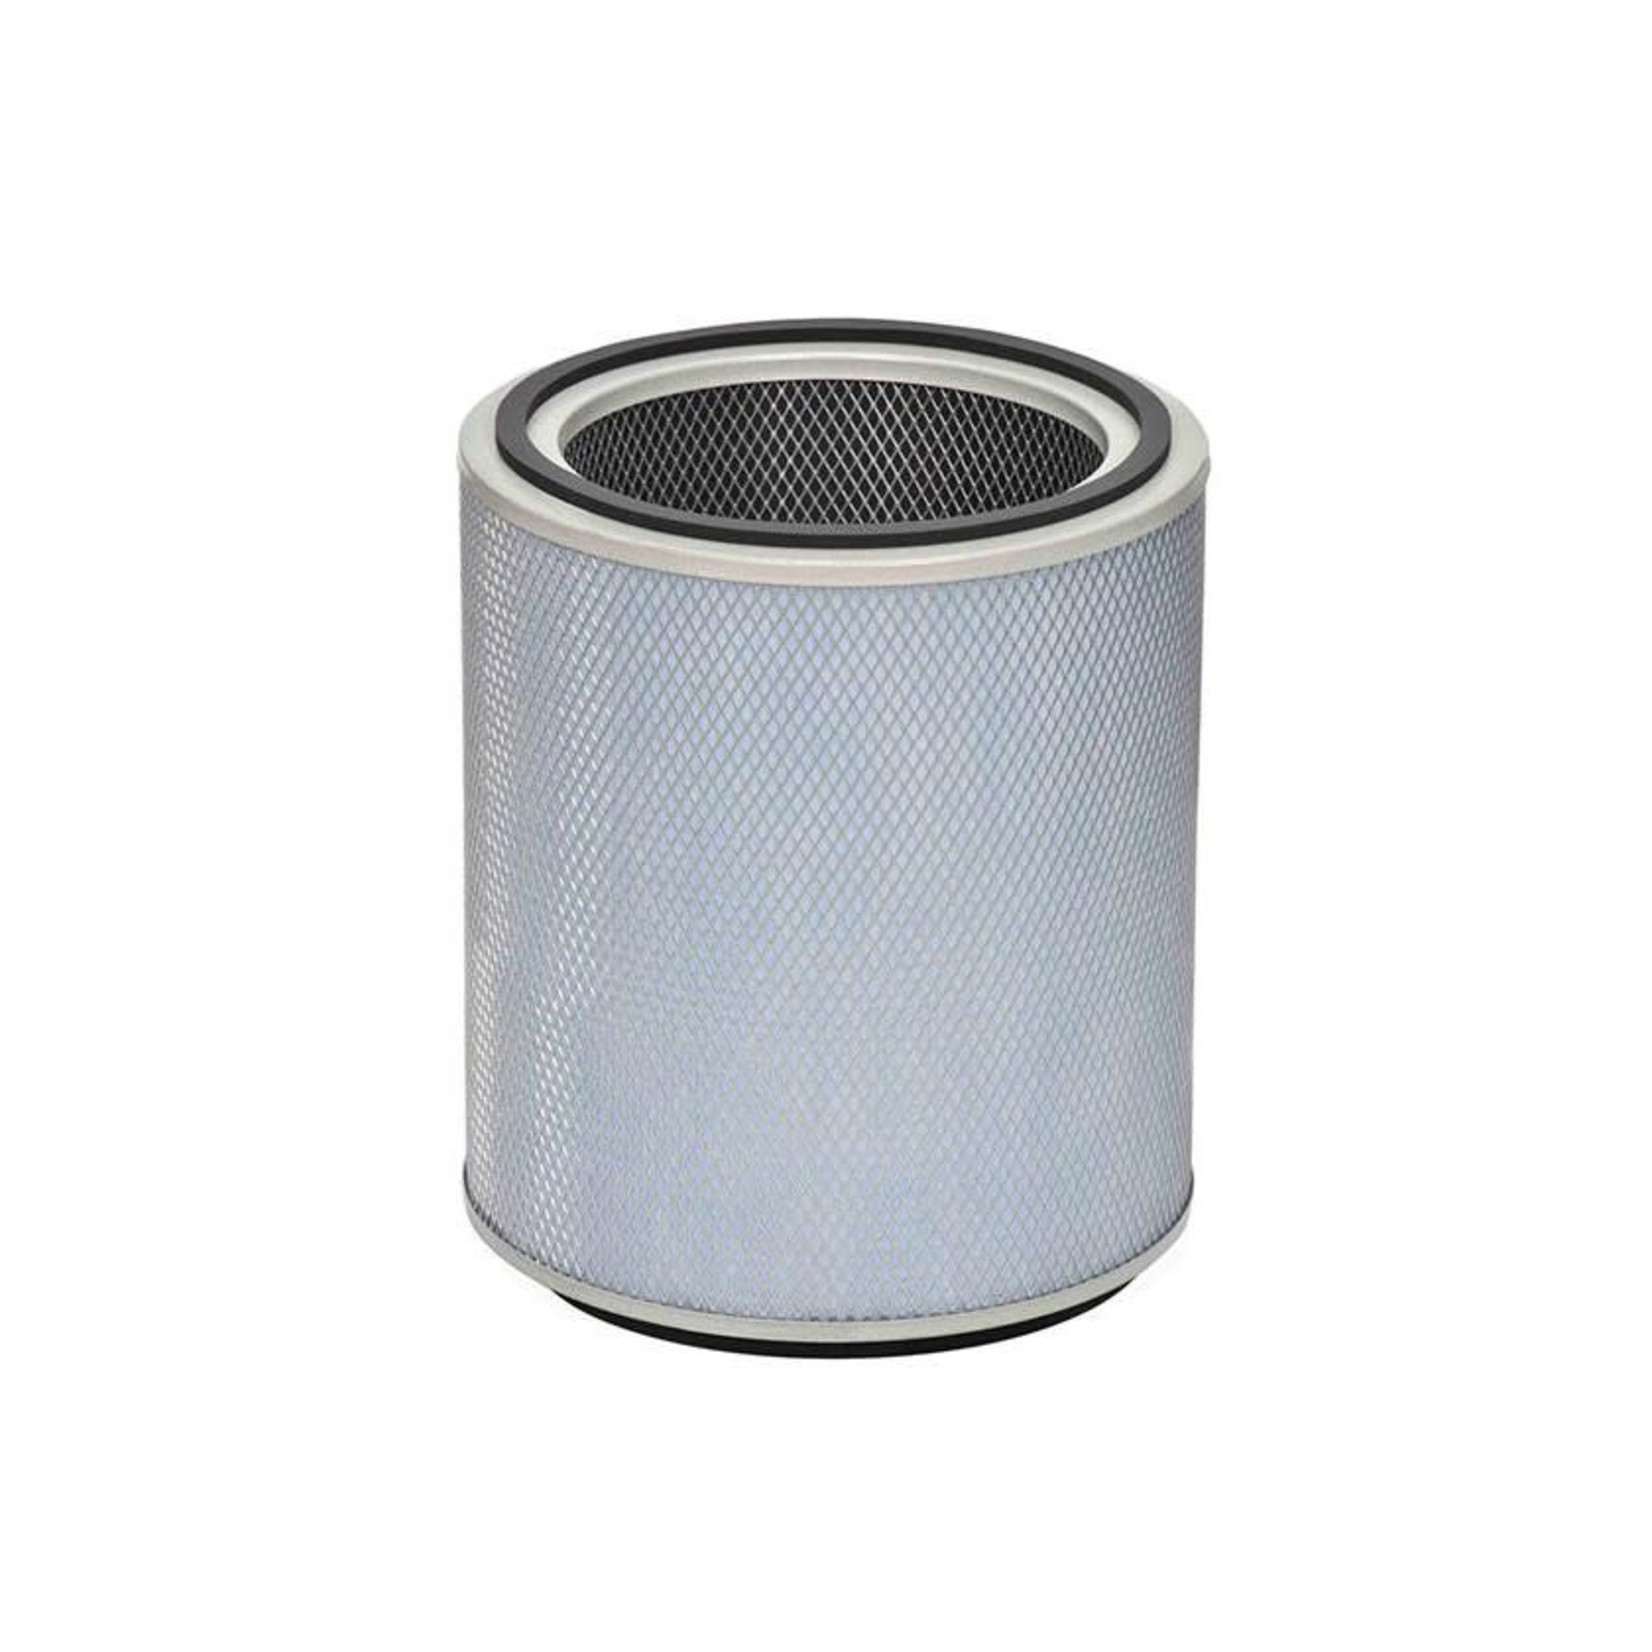 AUSTIN AIR BEDROOM MACHINE HM402 REPLACEMENT FILTER